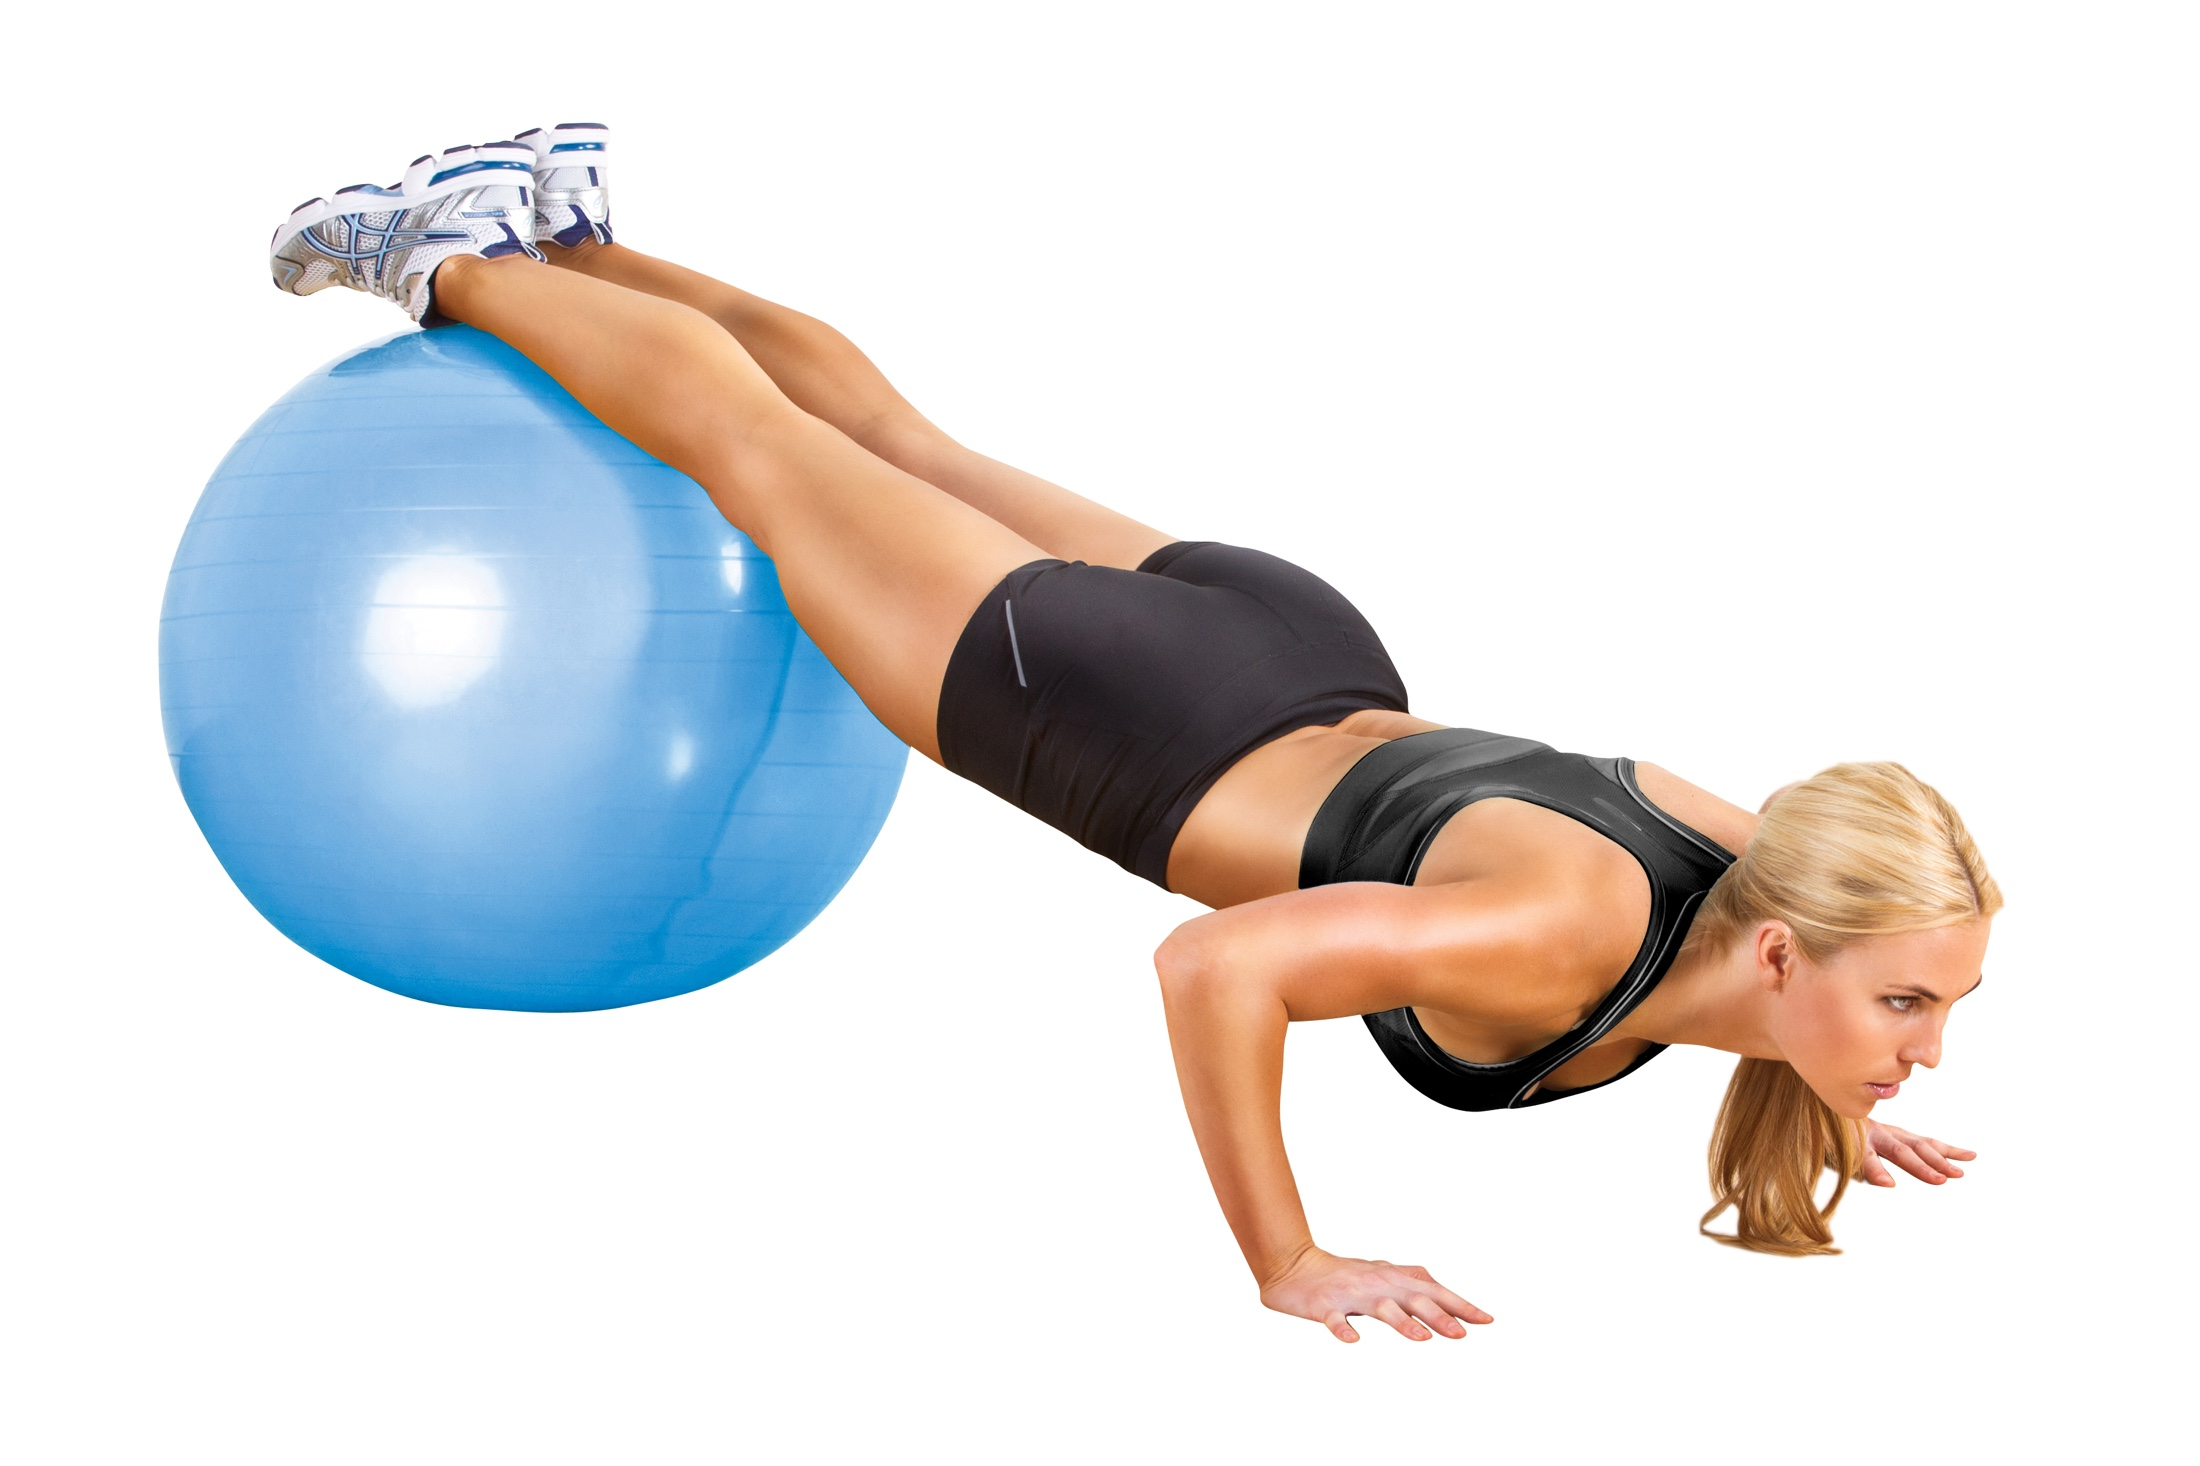 NordicTrack 65 cm Stability Ball gallery image 5